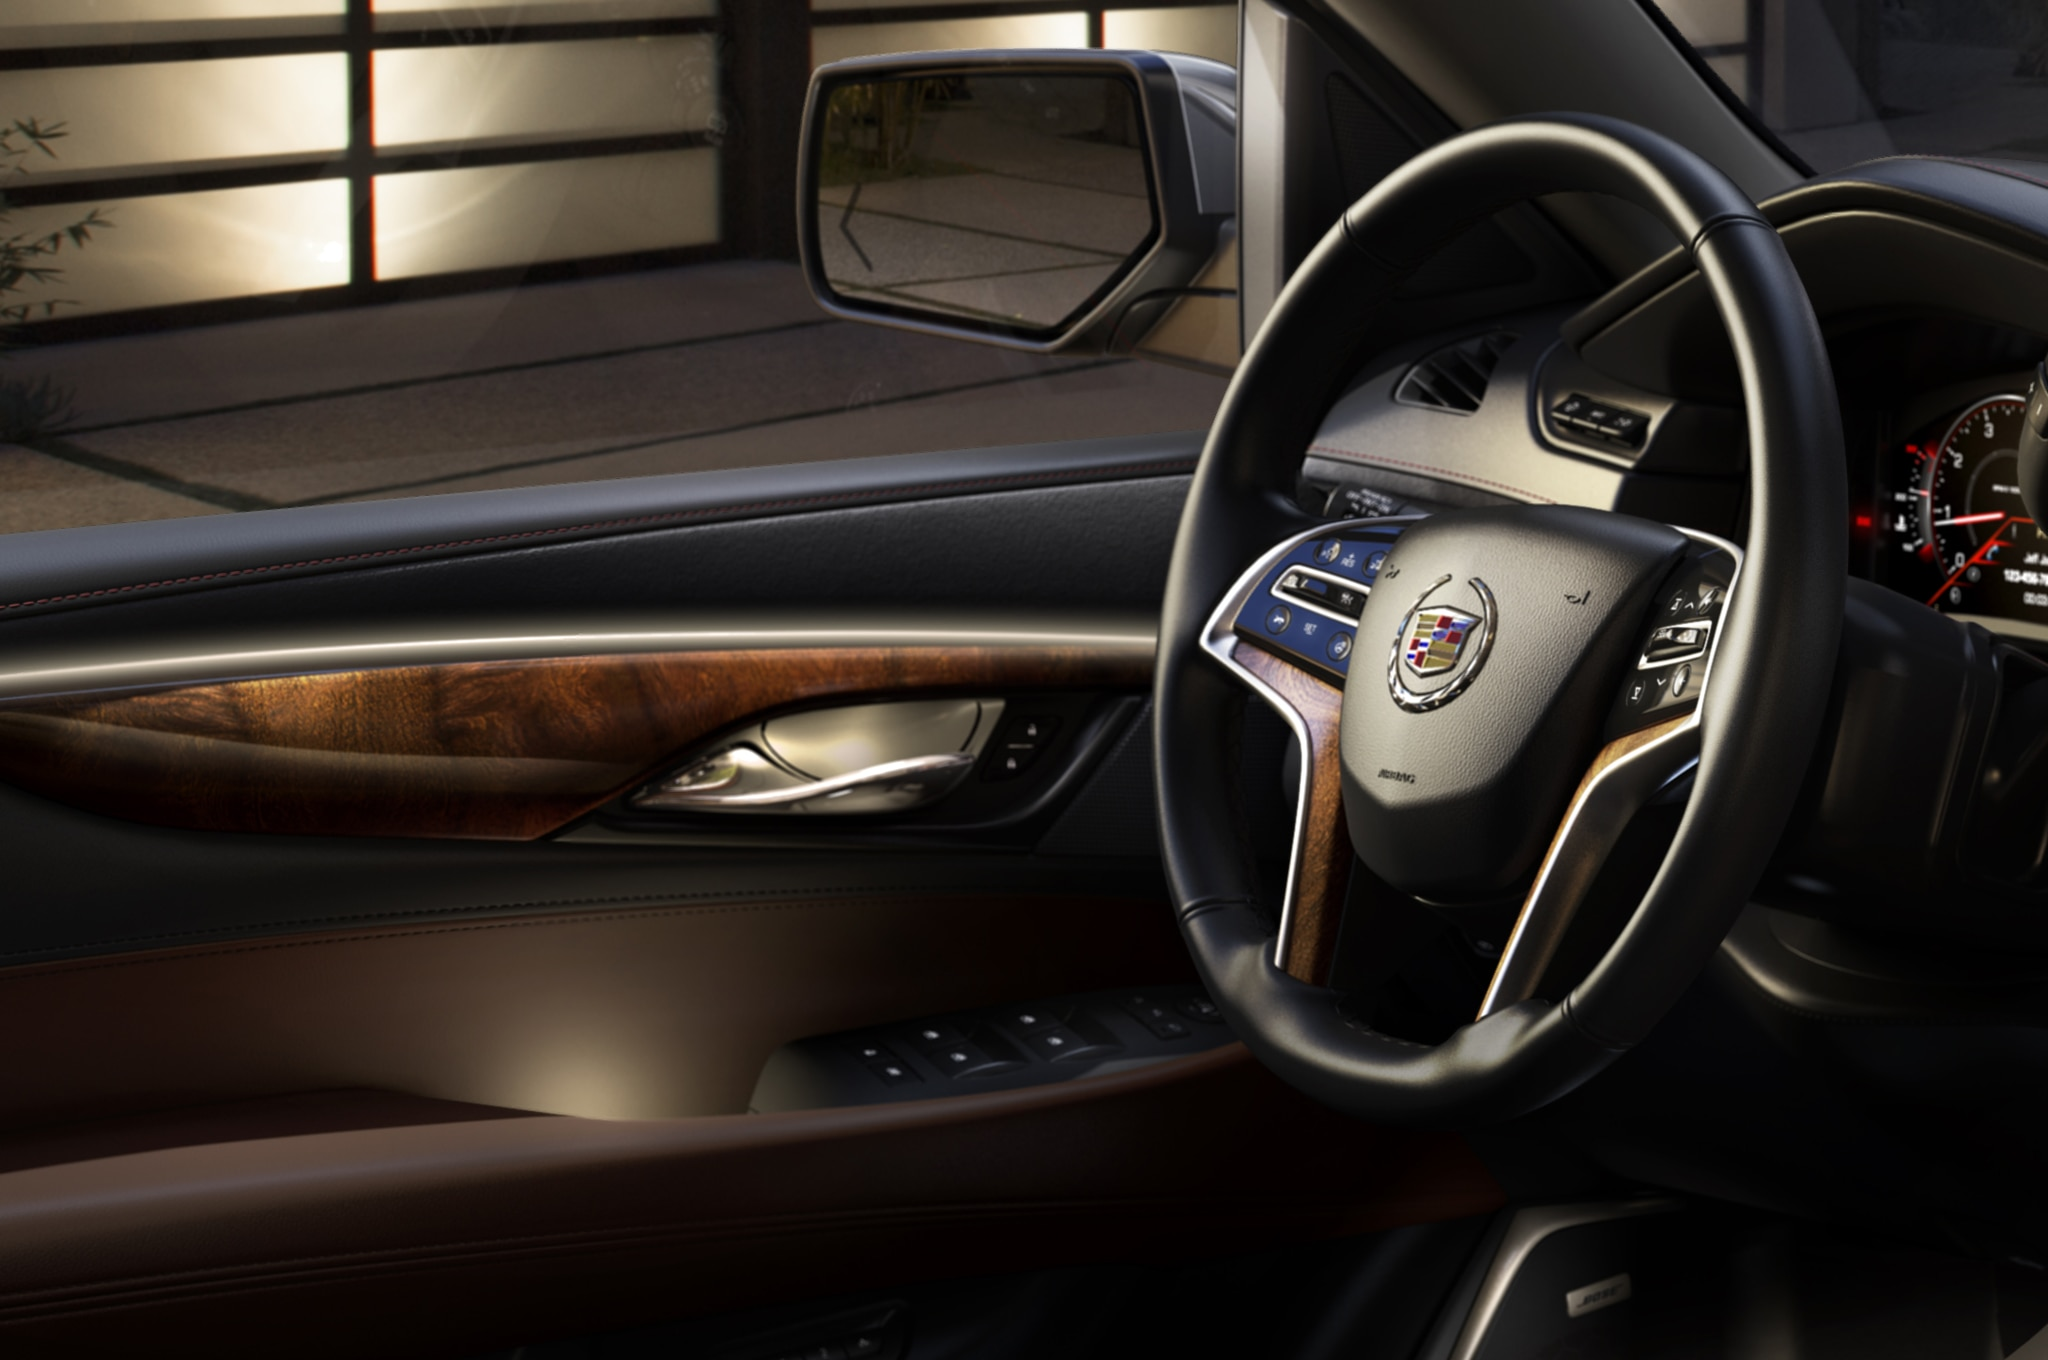 2015 Cadillac Escalade steering wheel view